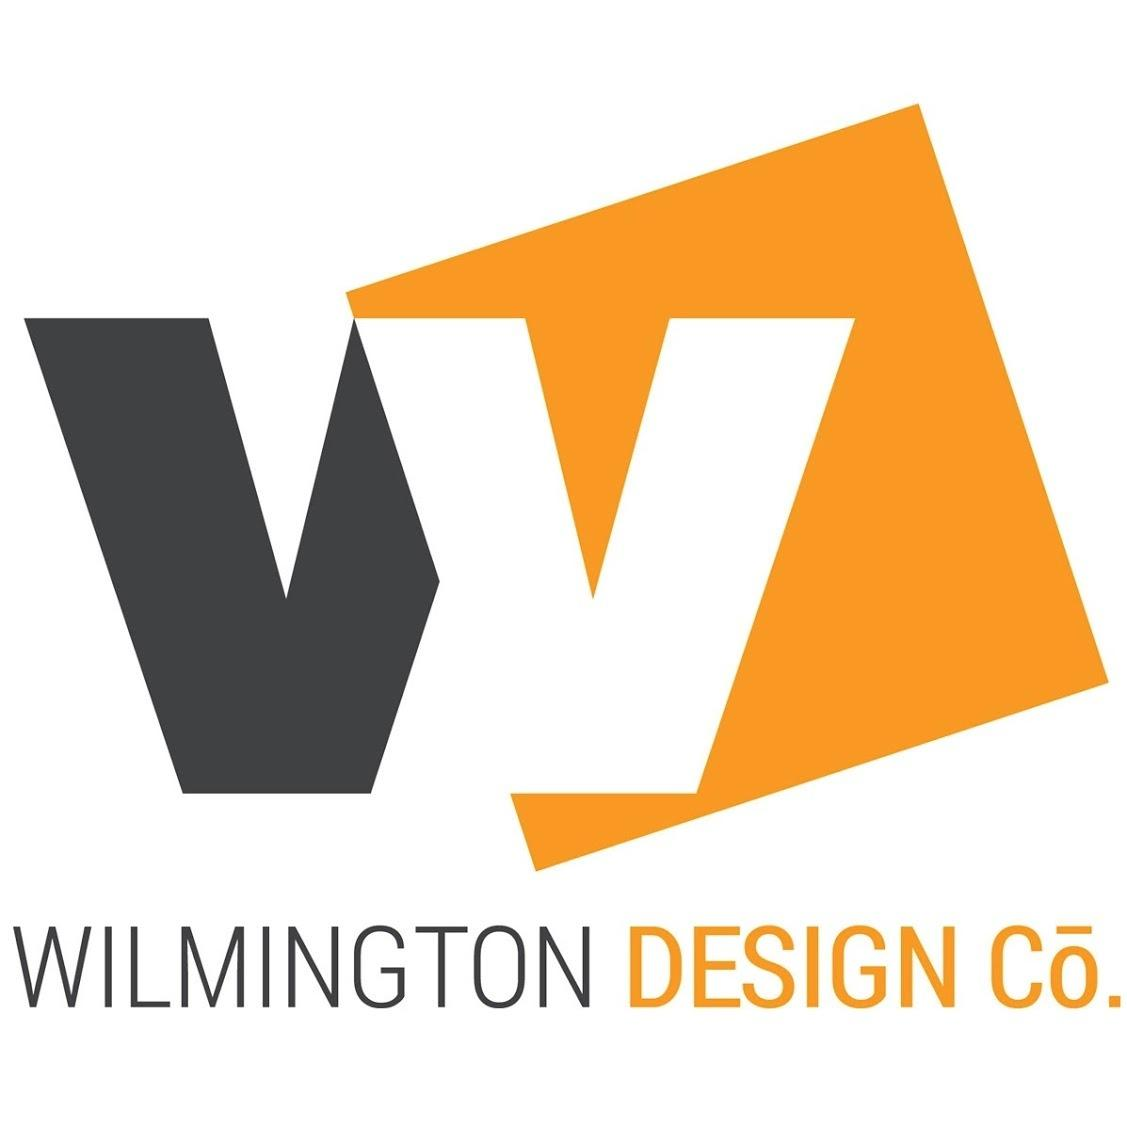 Wilmington design company 3517 wrightsville avenue suite a for Service design firms